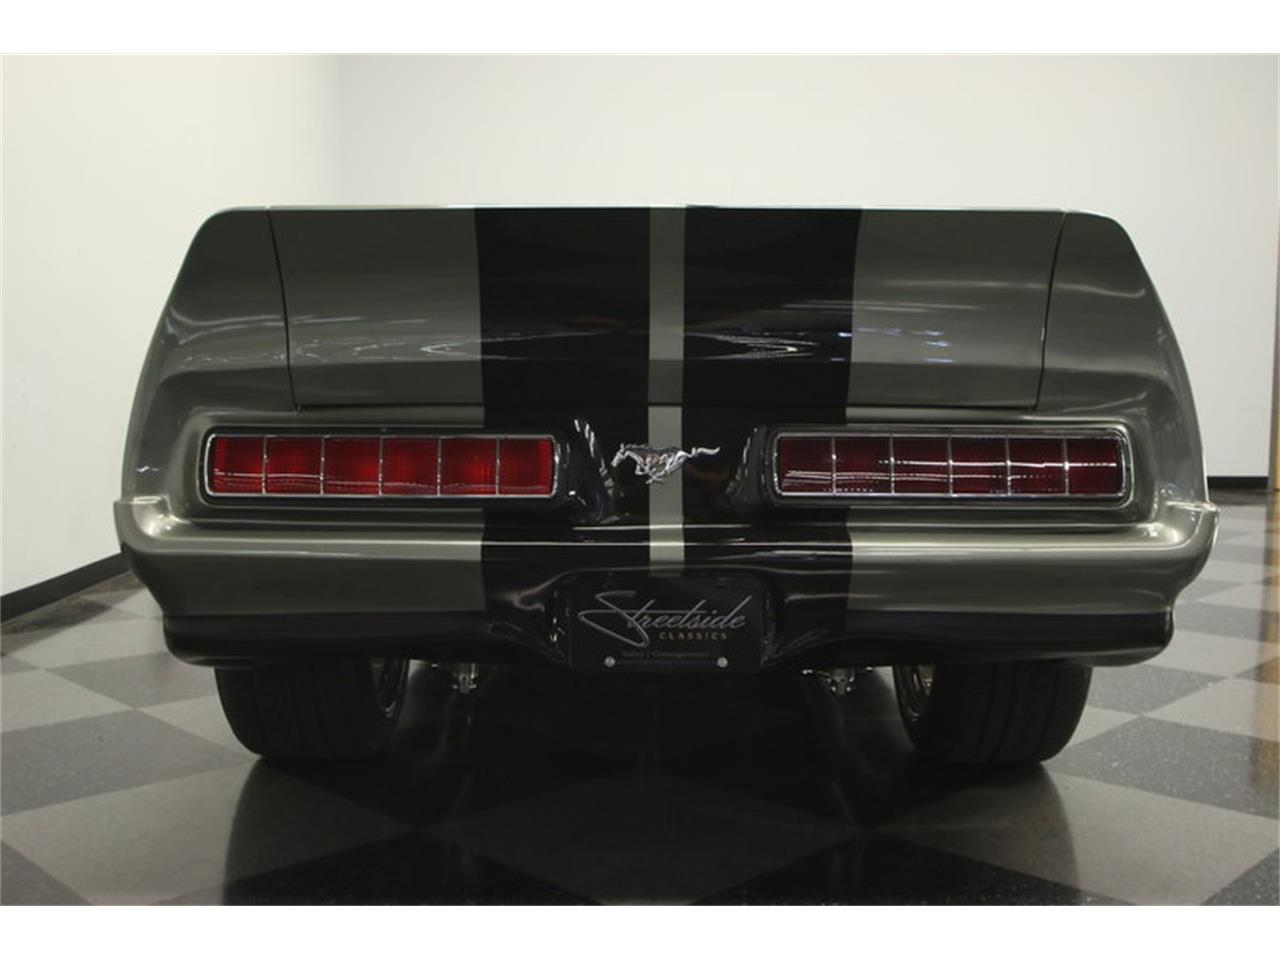 Large Picture of 1971 Mustang Fastback Restomod located in Florida Offered by Streetside Classics - Tampa - MGHW